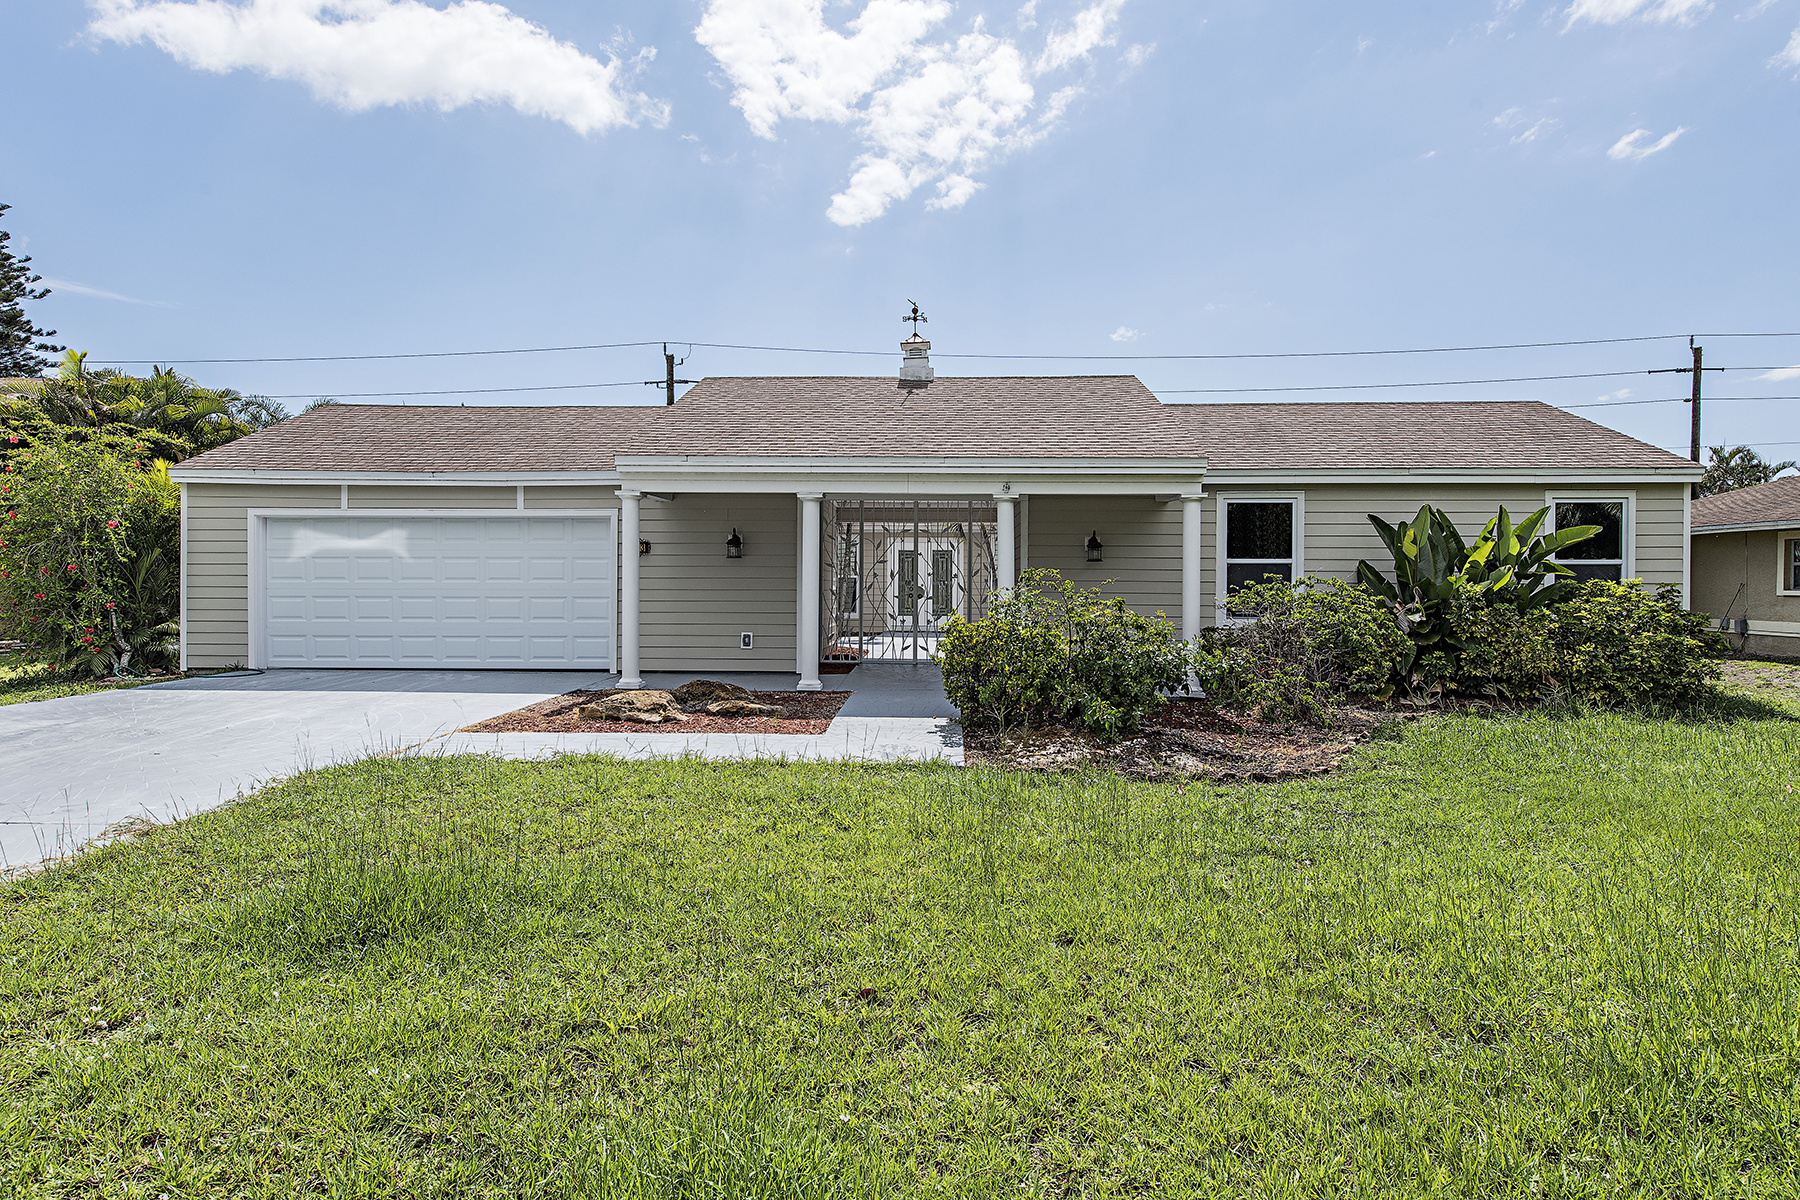 Single Family Home for Sale at Kings Lake 2243 Kings Lake Blvd Naples, Florida, 34112 United States